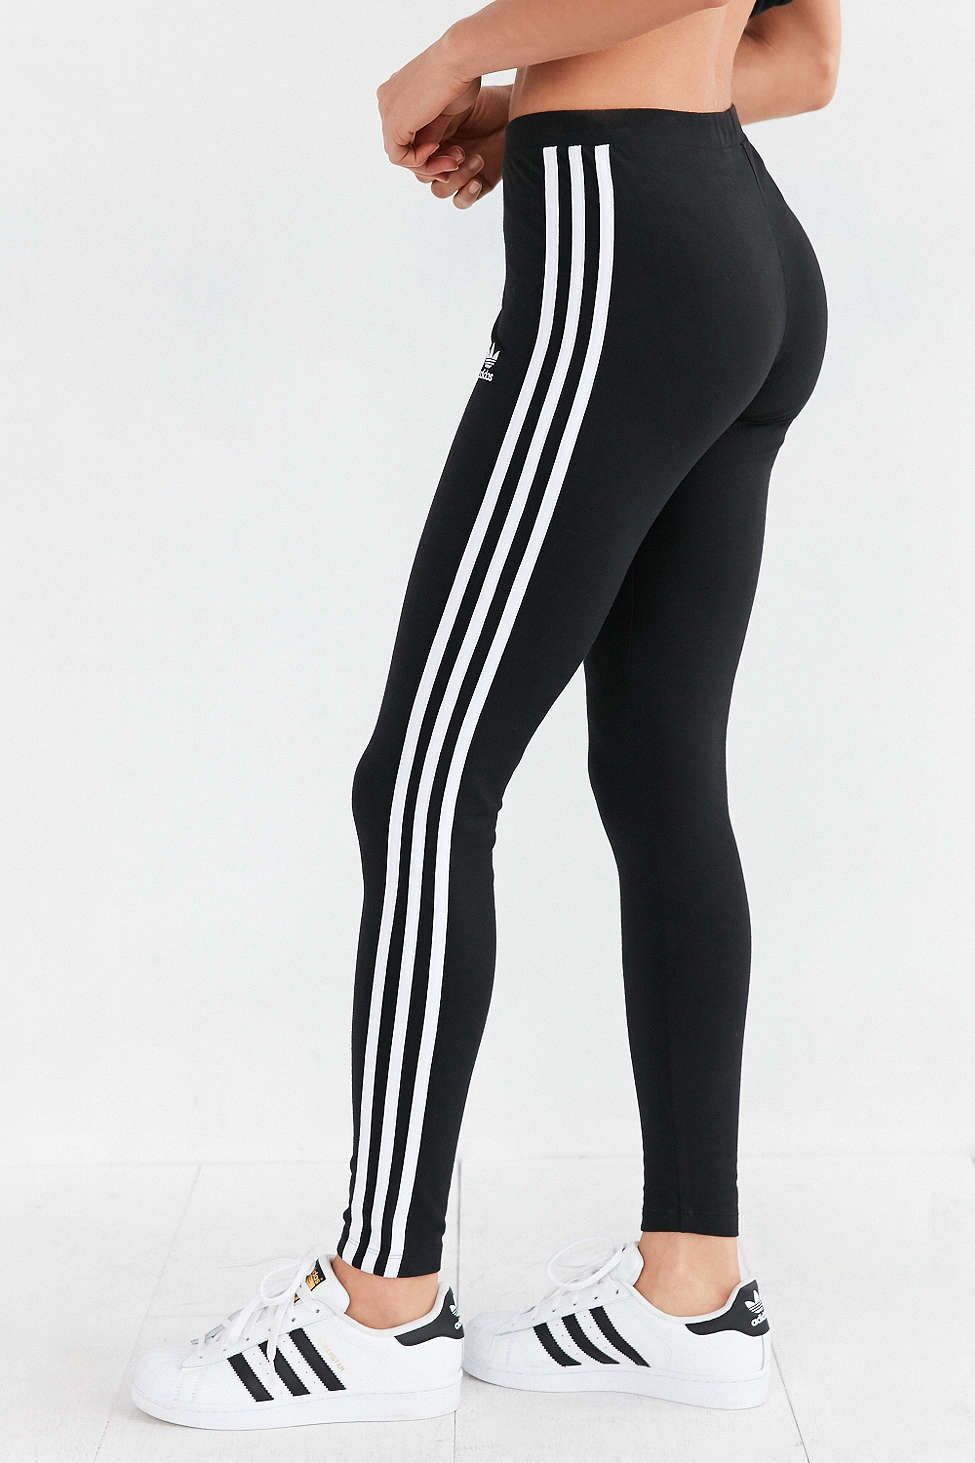 bb6a84403b900 adidas on in 2019 | Free runs | Striped leggings, Adidas, Women's ...